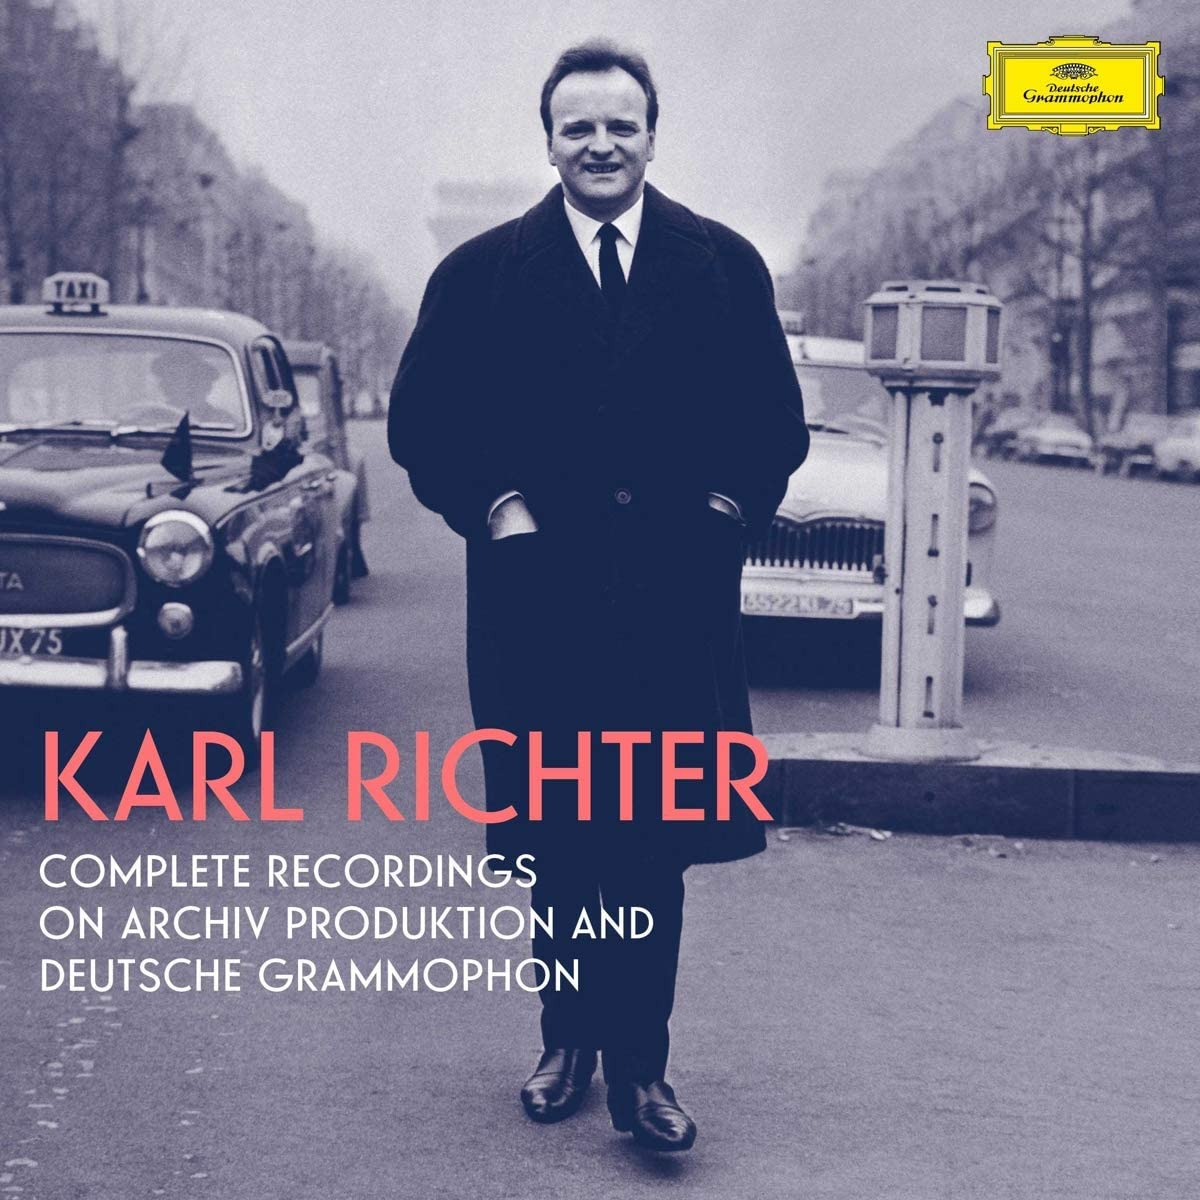 Review of Karl Richter : Complete Recordings on Archiv Produktion and Deutsche Grammophon (97 CDs)